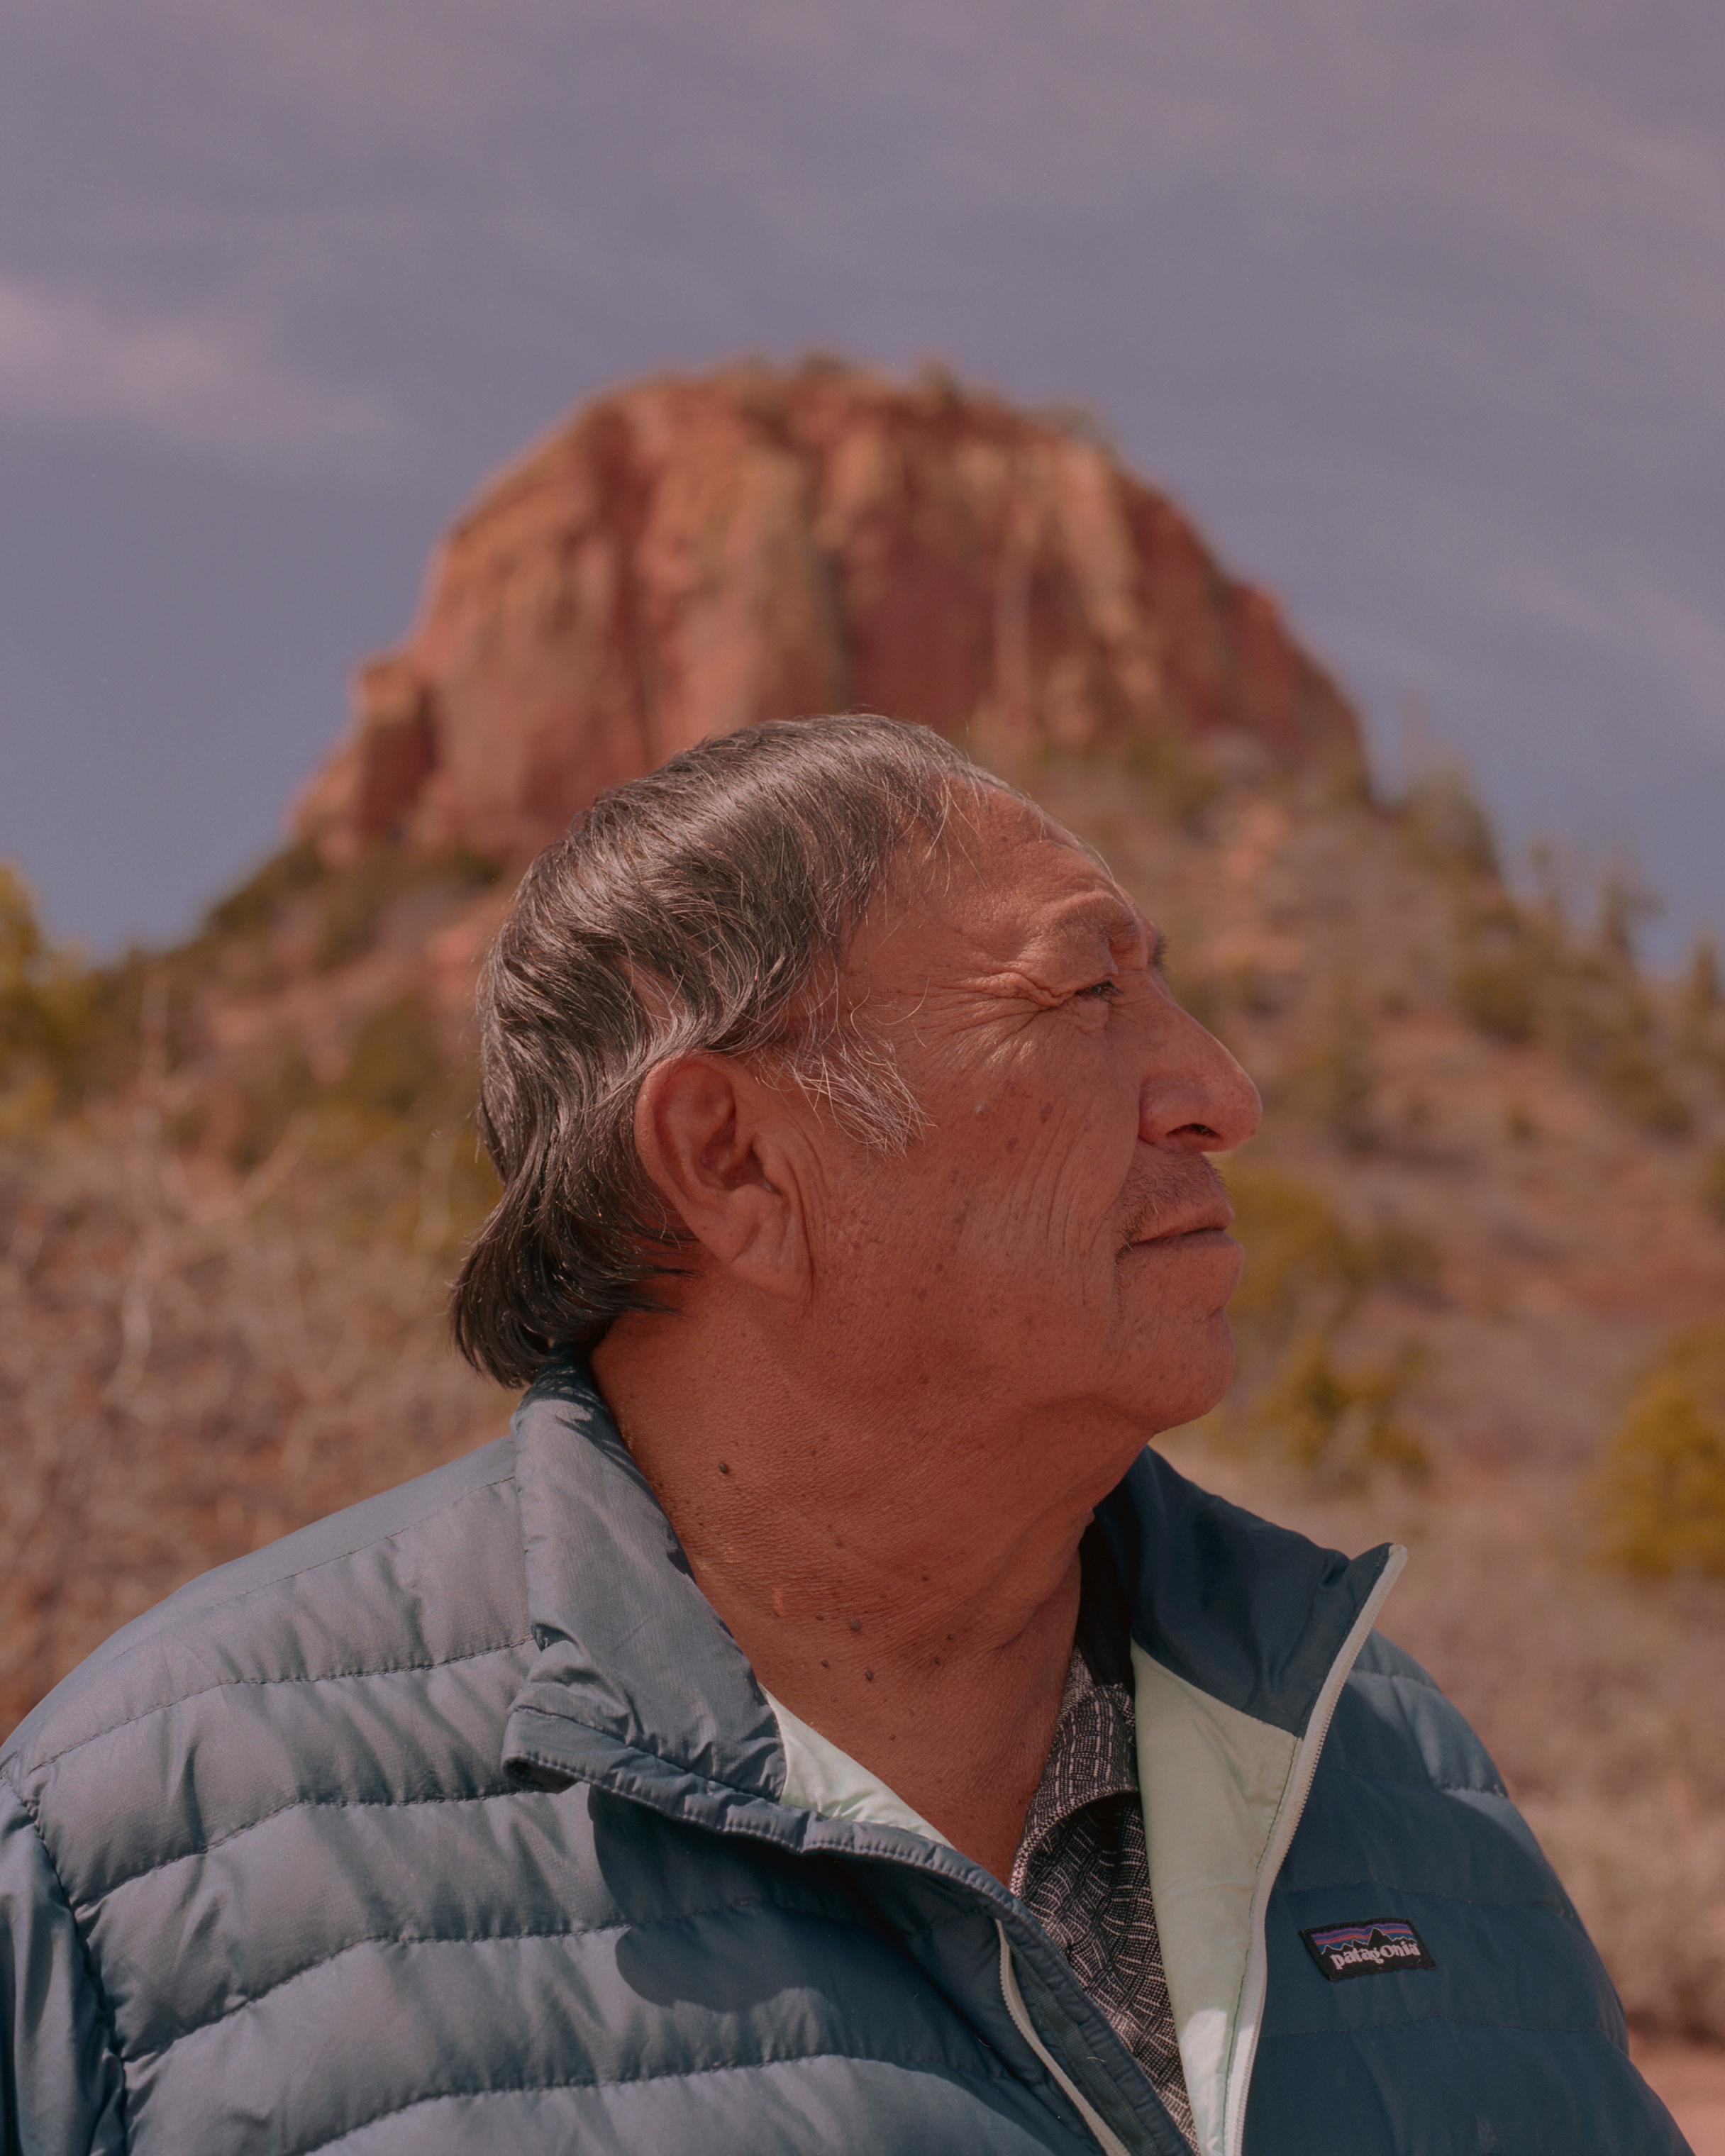 Jonah Yellowman, a Navajo medicine man, is a spiritual adviser to Utah Diné Bikéyah. That work includes activities like organizing a traditional ceremony to bless the lawyers who are fighting the legality of Trump's order. Like many who live in the area, he also takes trips to Bears Ears to collect plants and herbs for traditional and ceremonial use.